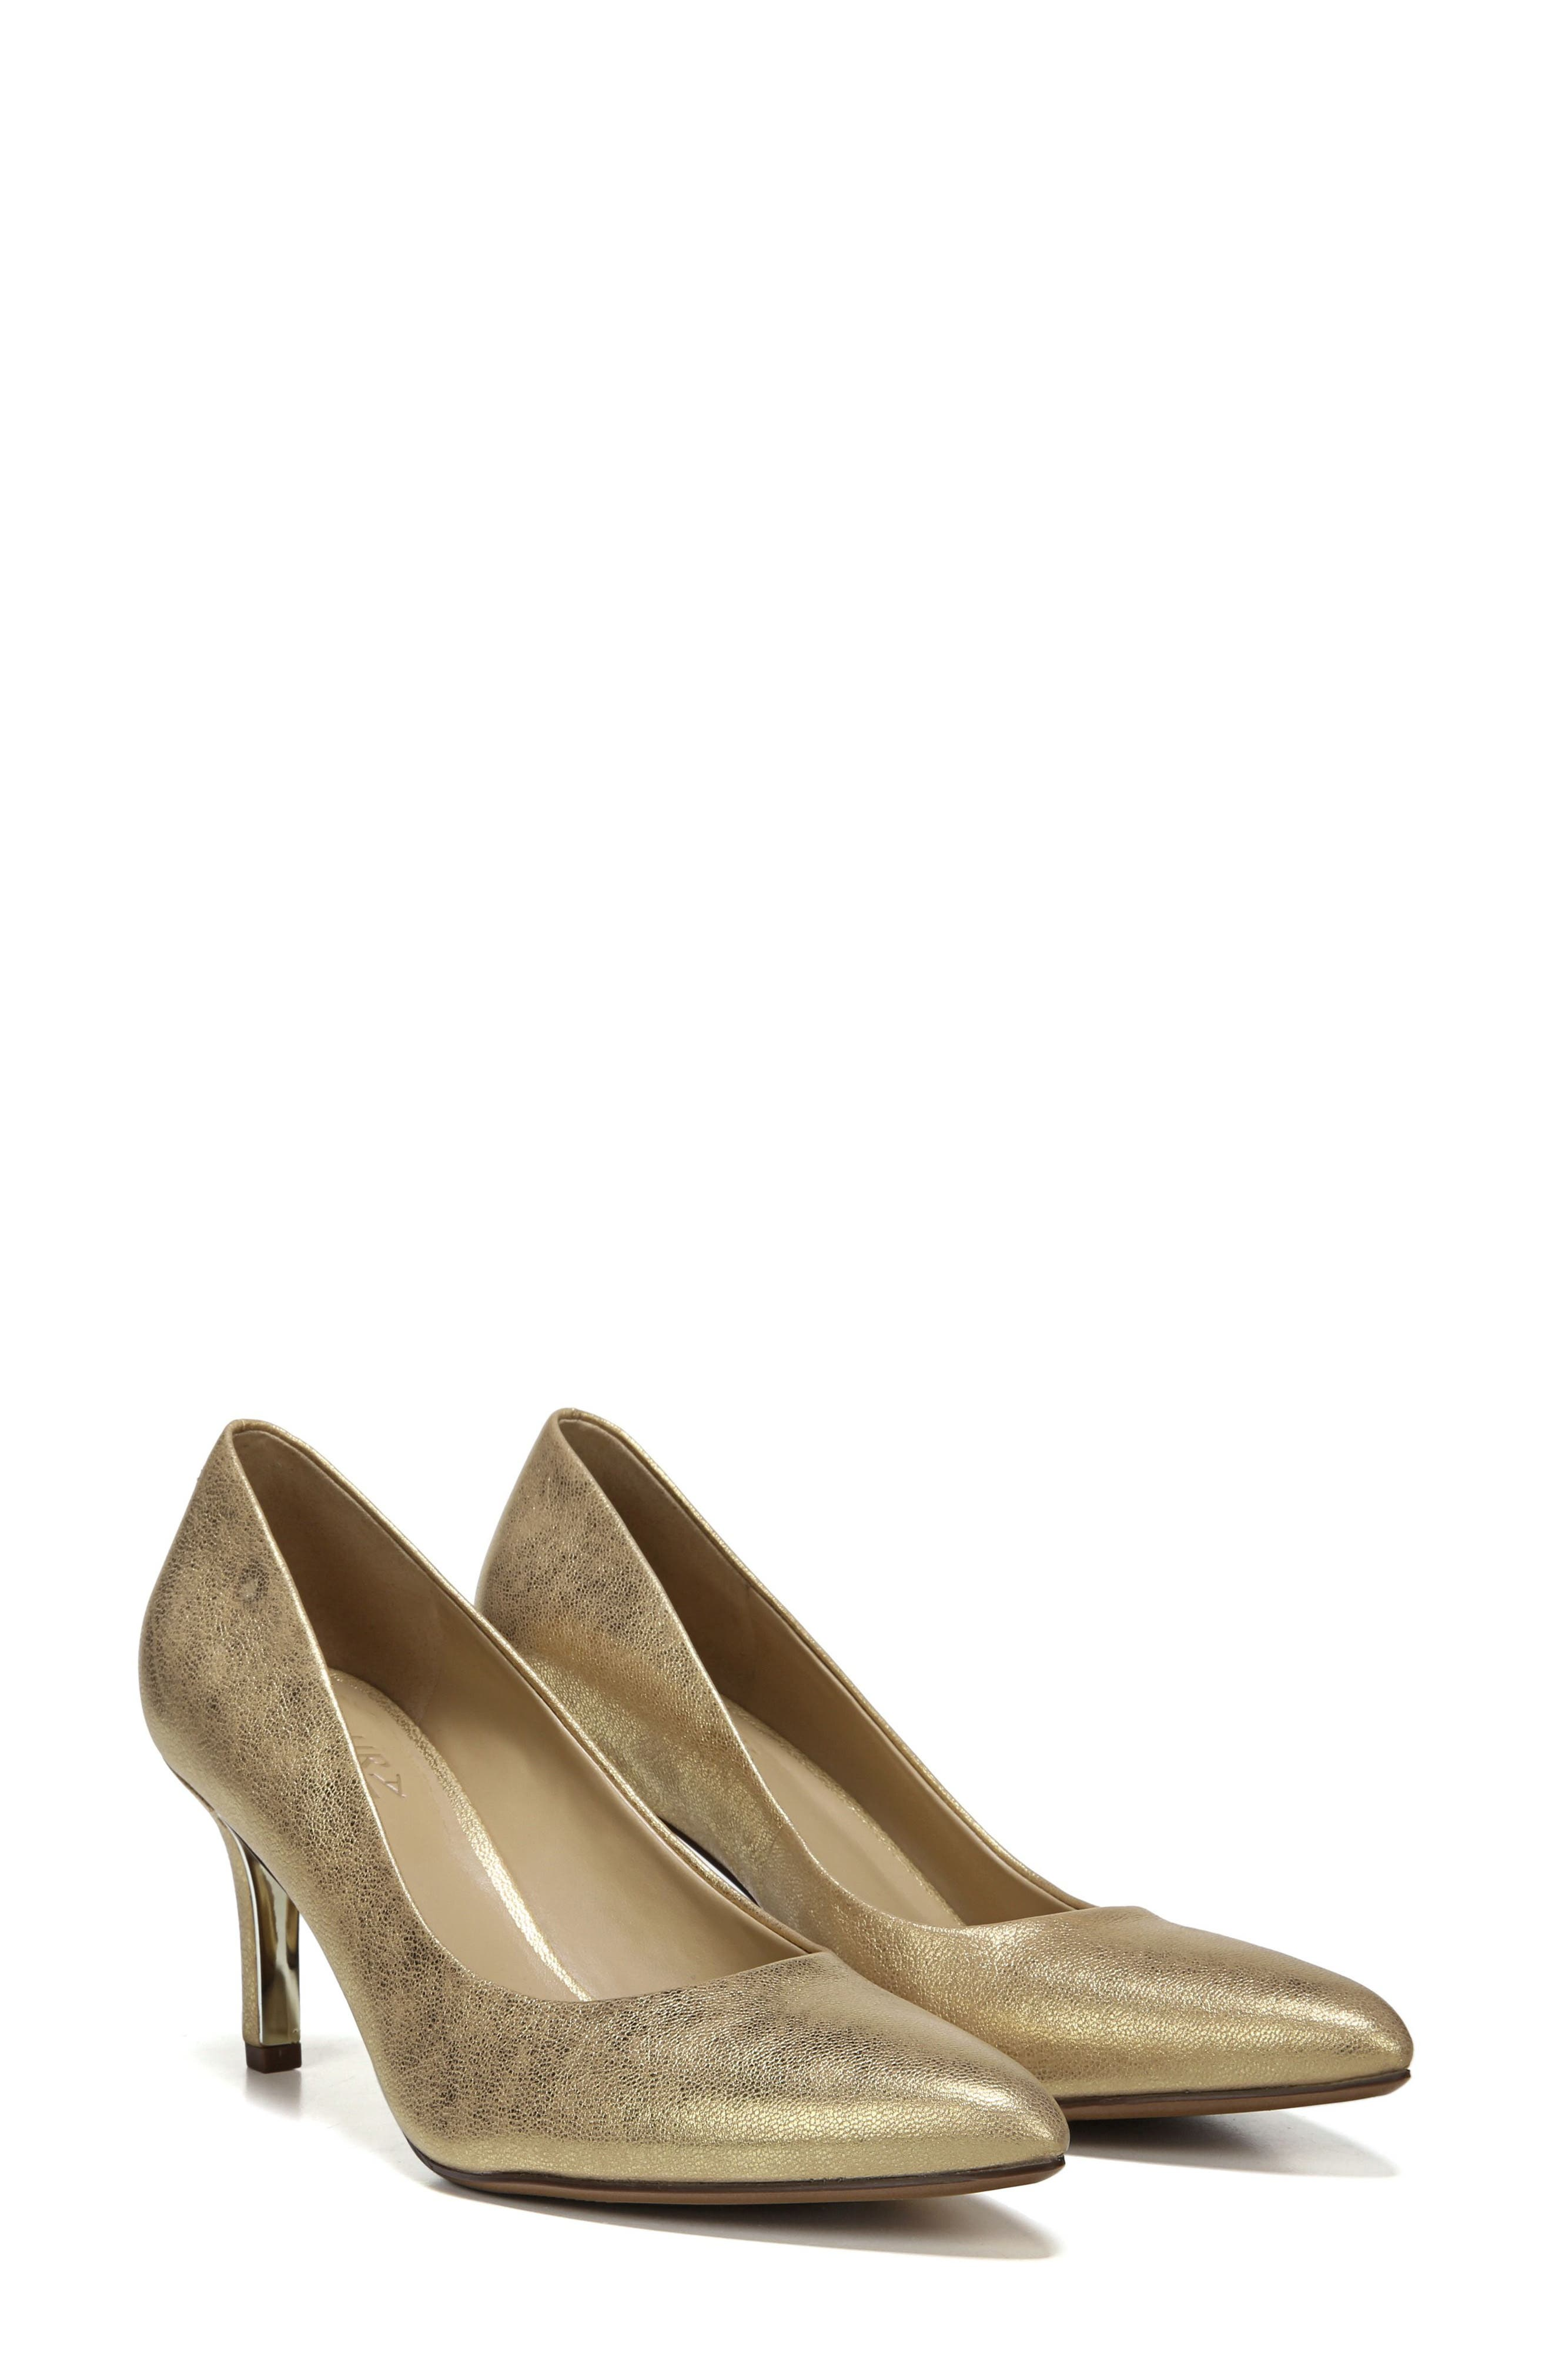 NATURALIZER Natalie Pointy Toe Pump, Main, color, GOLD LEATHER